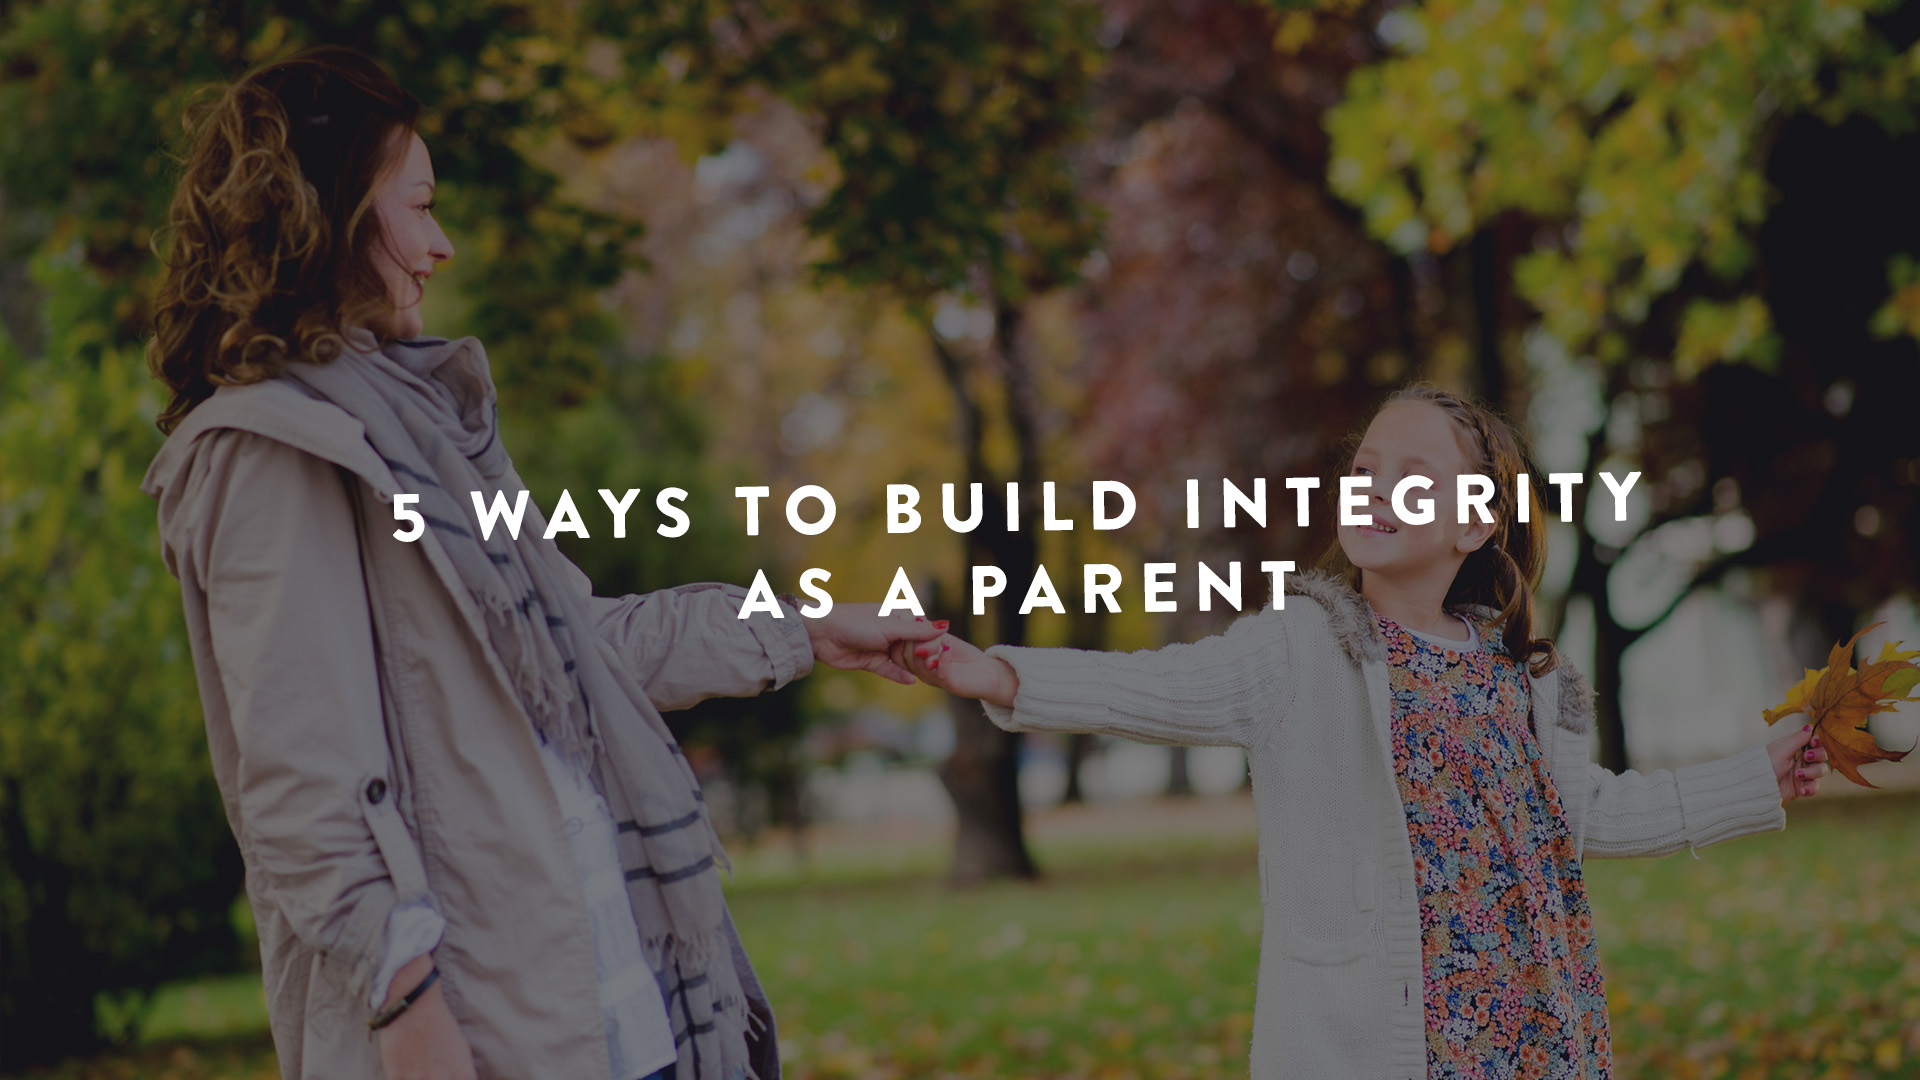 5 Ways to Build integrity as a parent